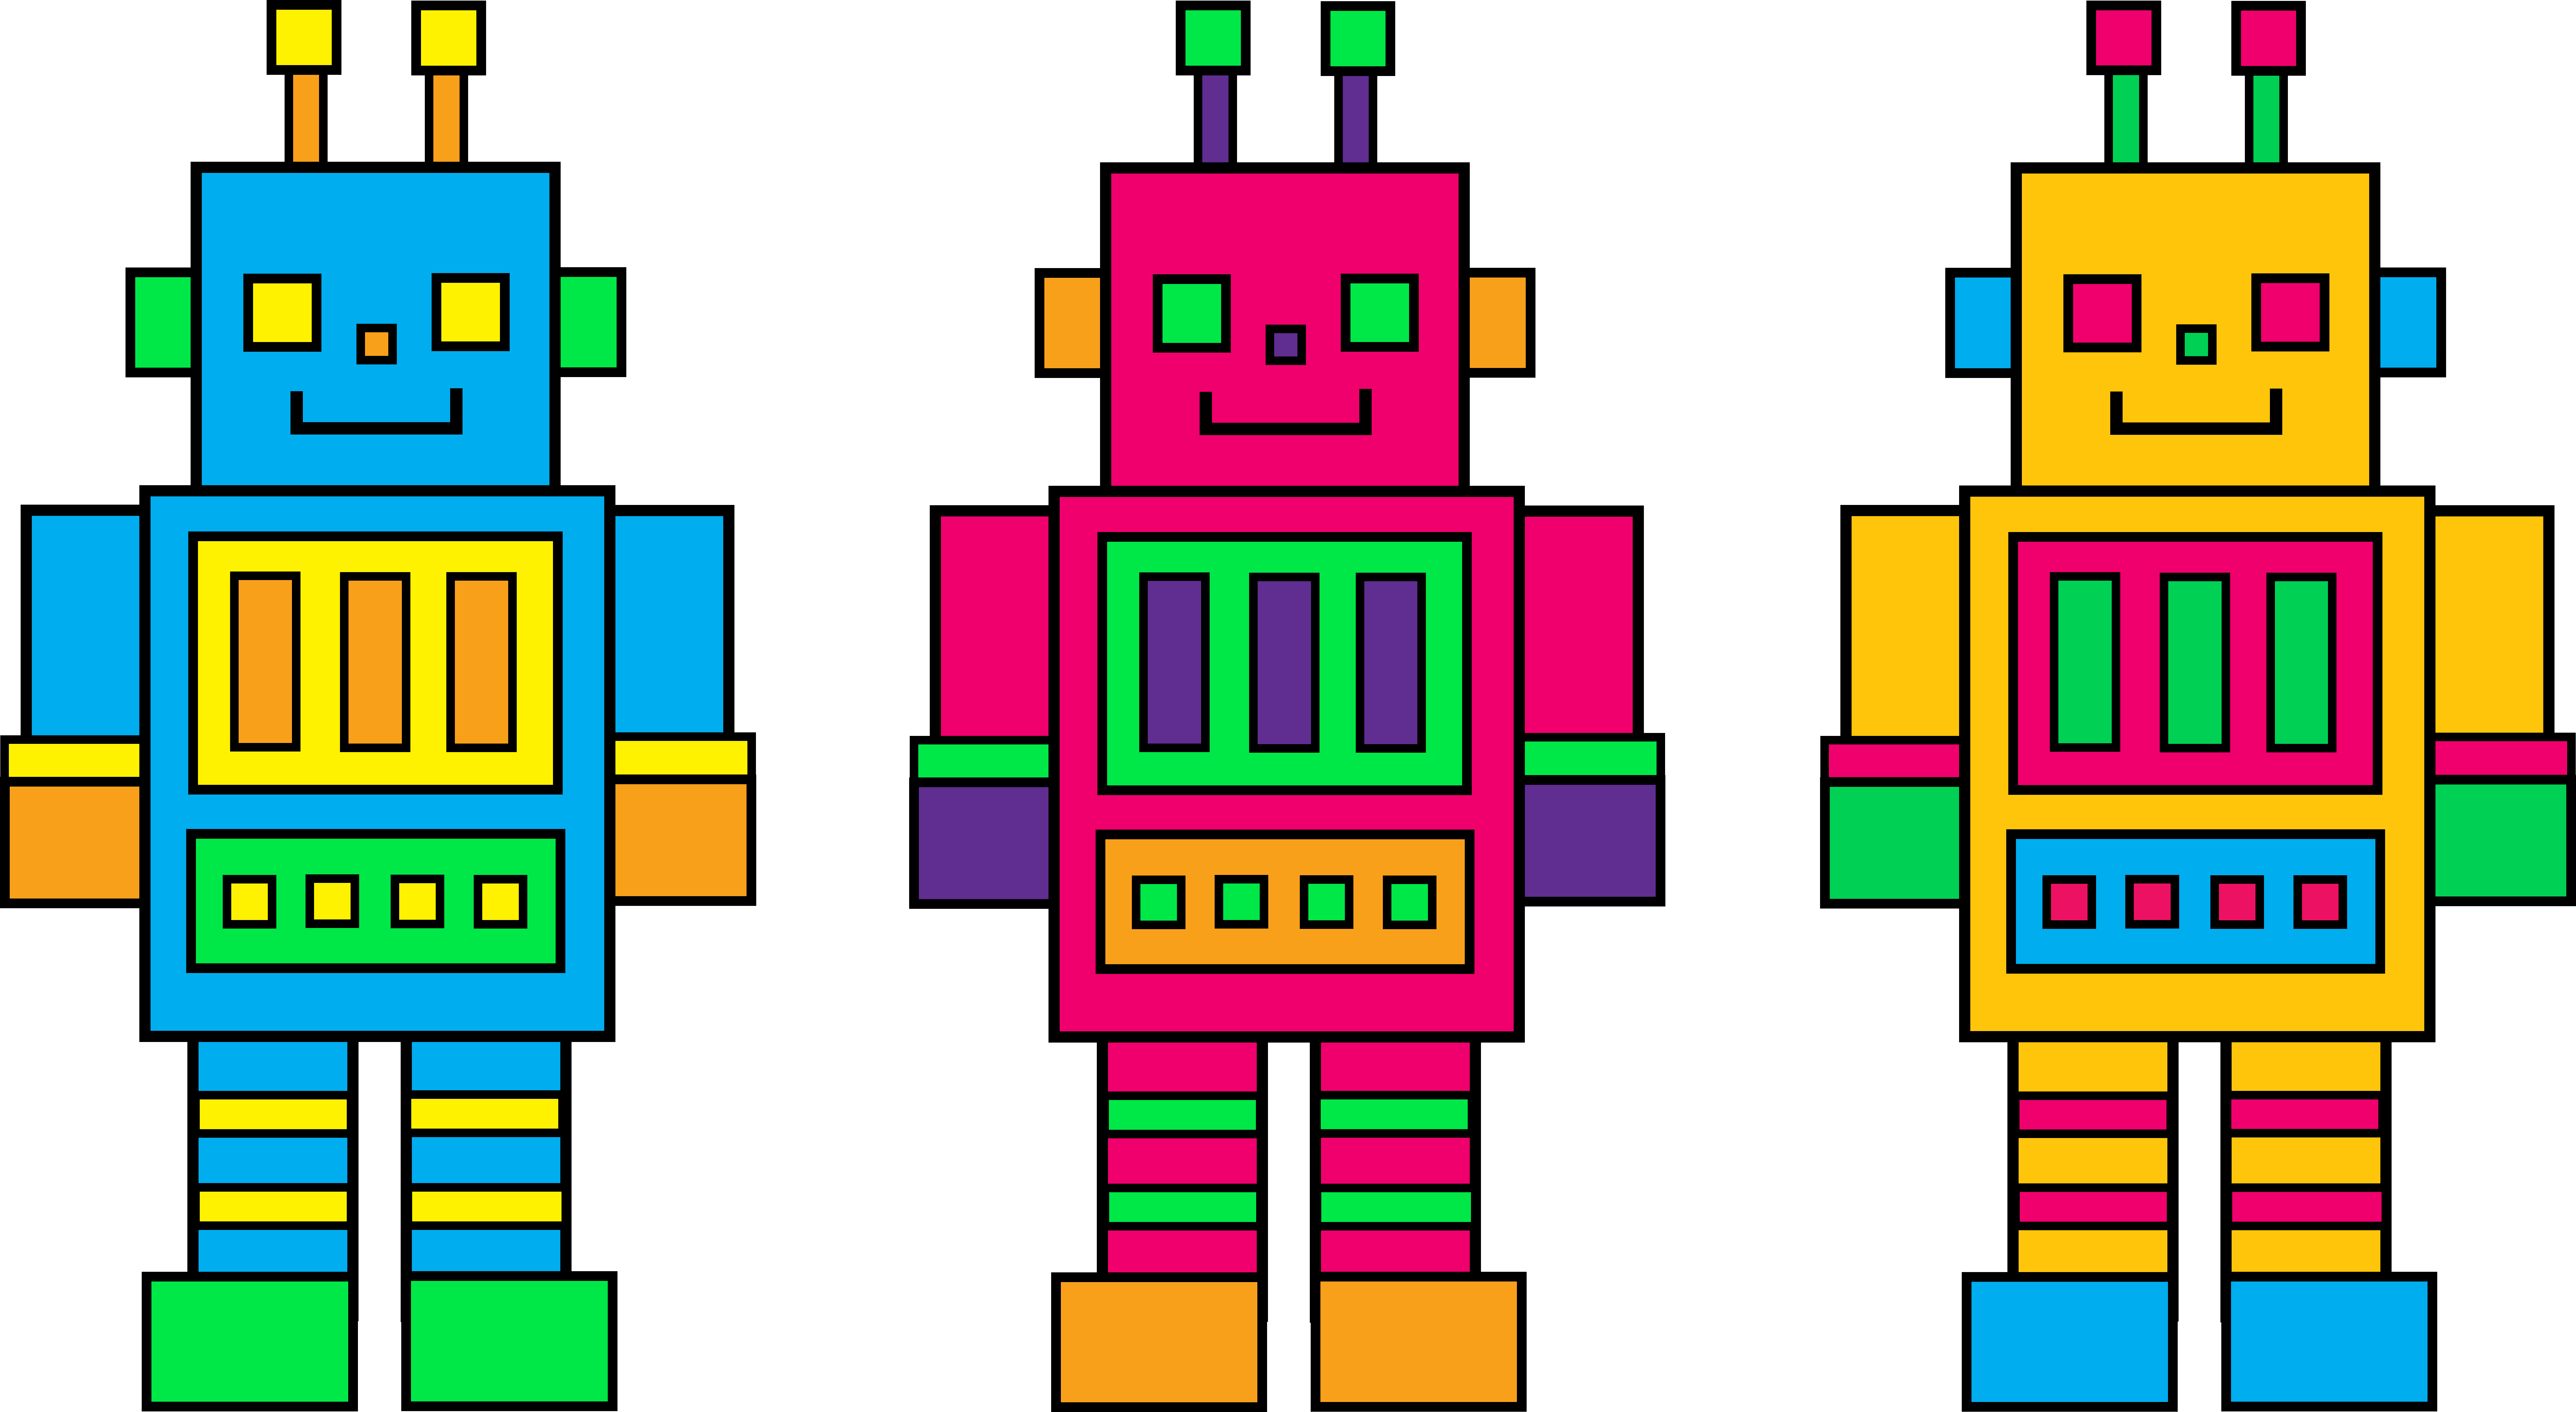 1000  images about robot printables on Pinterest | Aliens, Digital art and Clip art